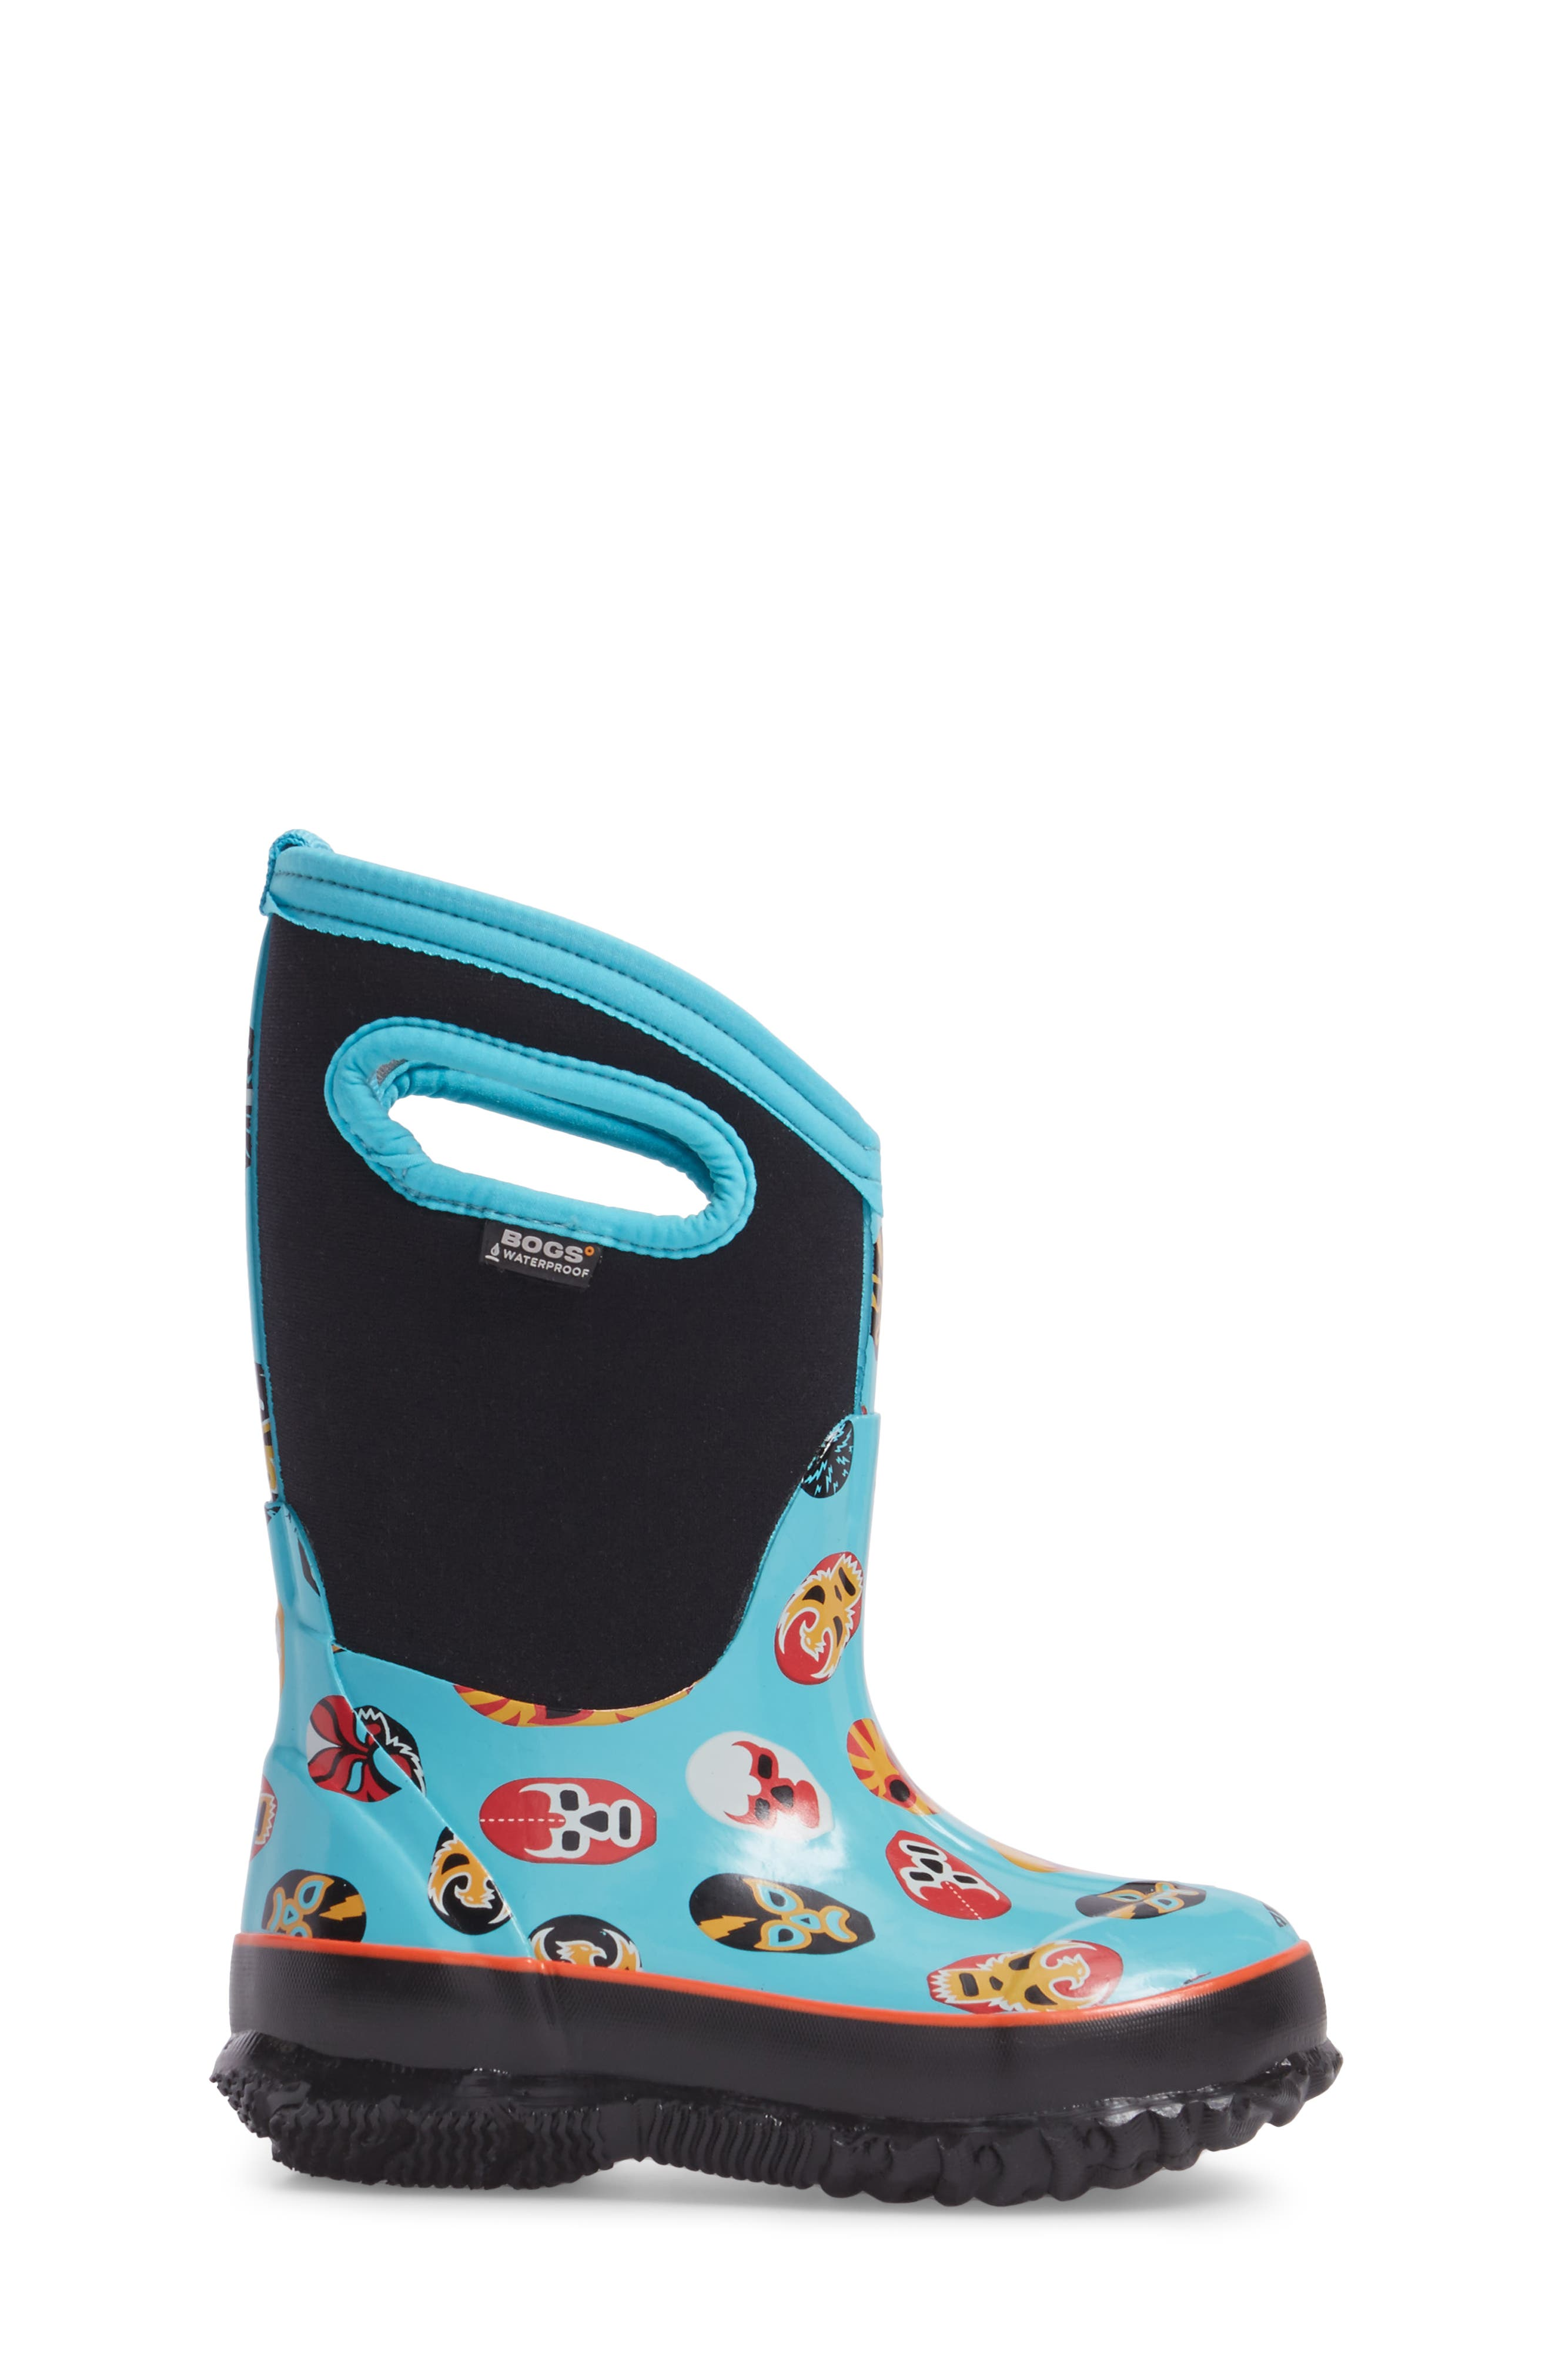 Alternate Image 3  - Bogs Classic Mask Insulated Waterproof Boot (Toddler, Little Kid & Big Kid)